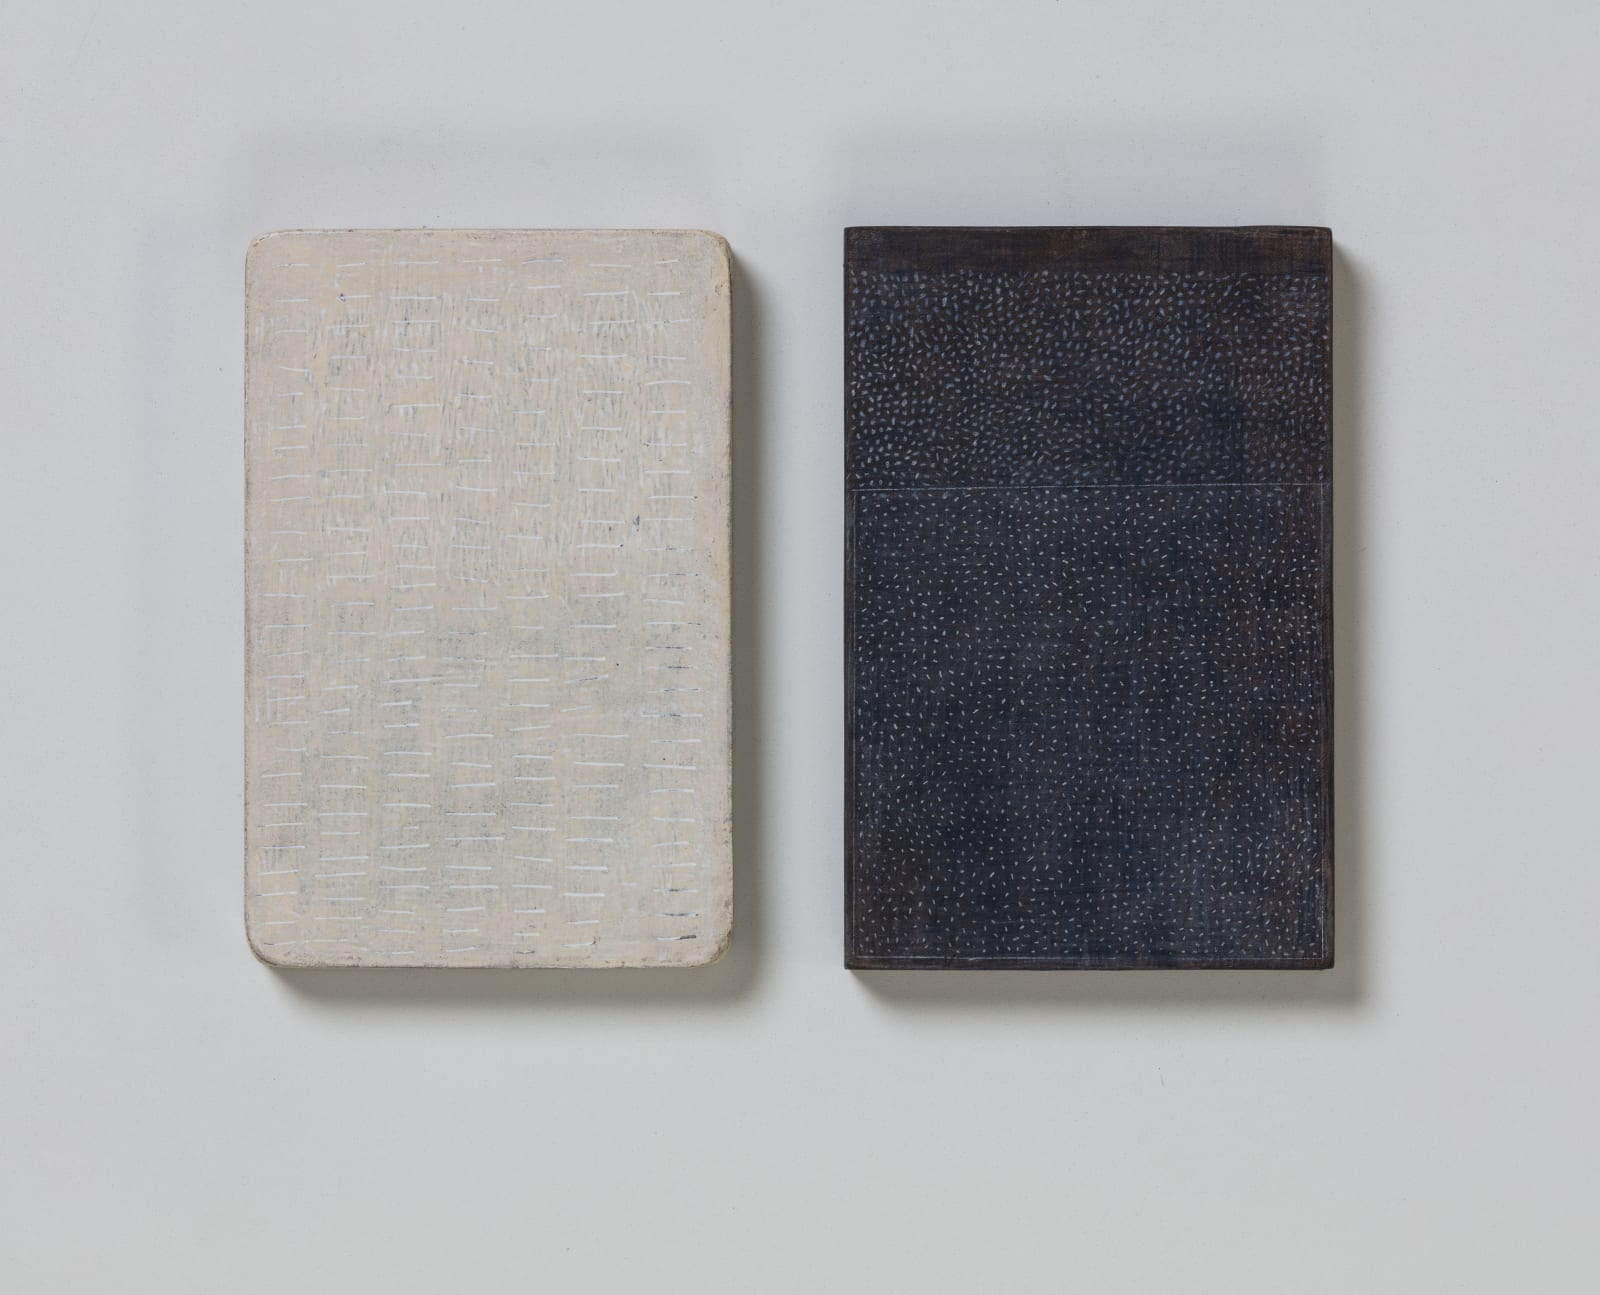 Nos. 7 & 8, from flume series, 2020 oils on paper on wood 20.5 x 13.5 cm / 8 x 5.3 in each